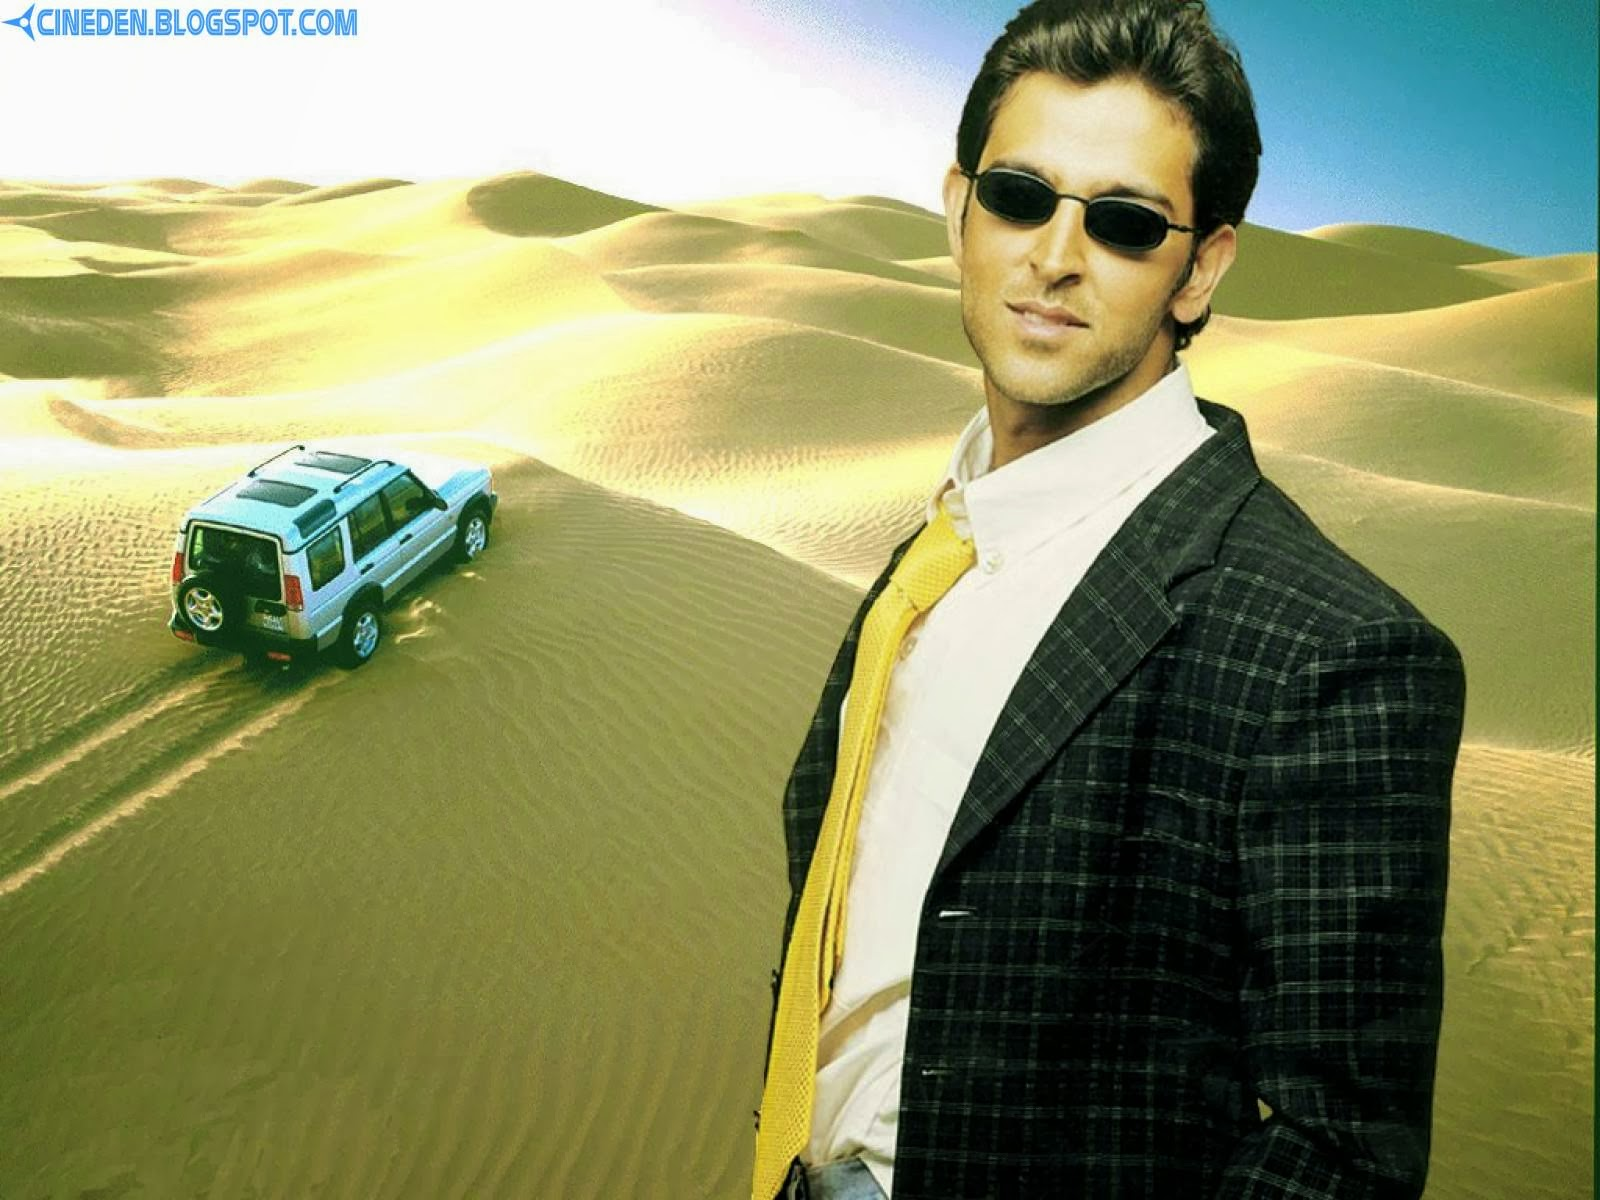 Doctors told me that I can't perform action scenes: Hrithik - CineDen